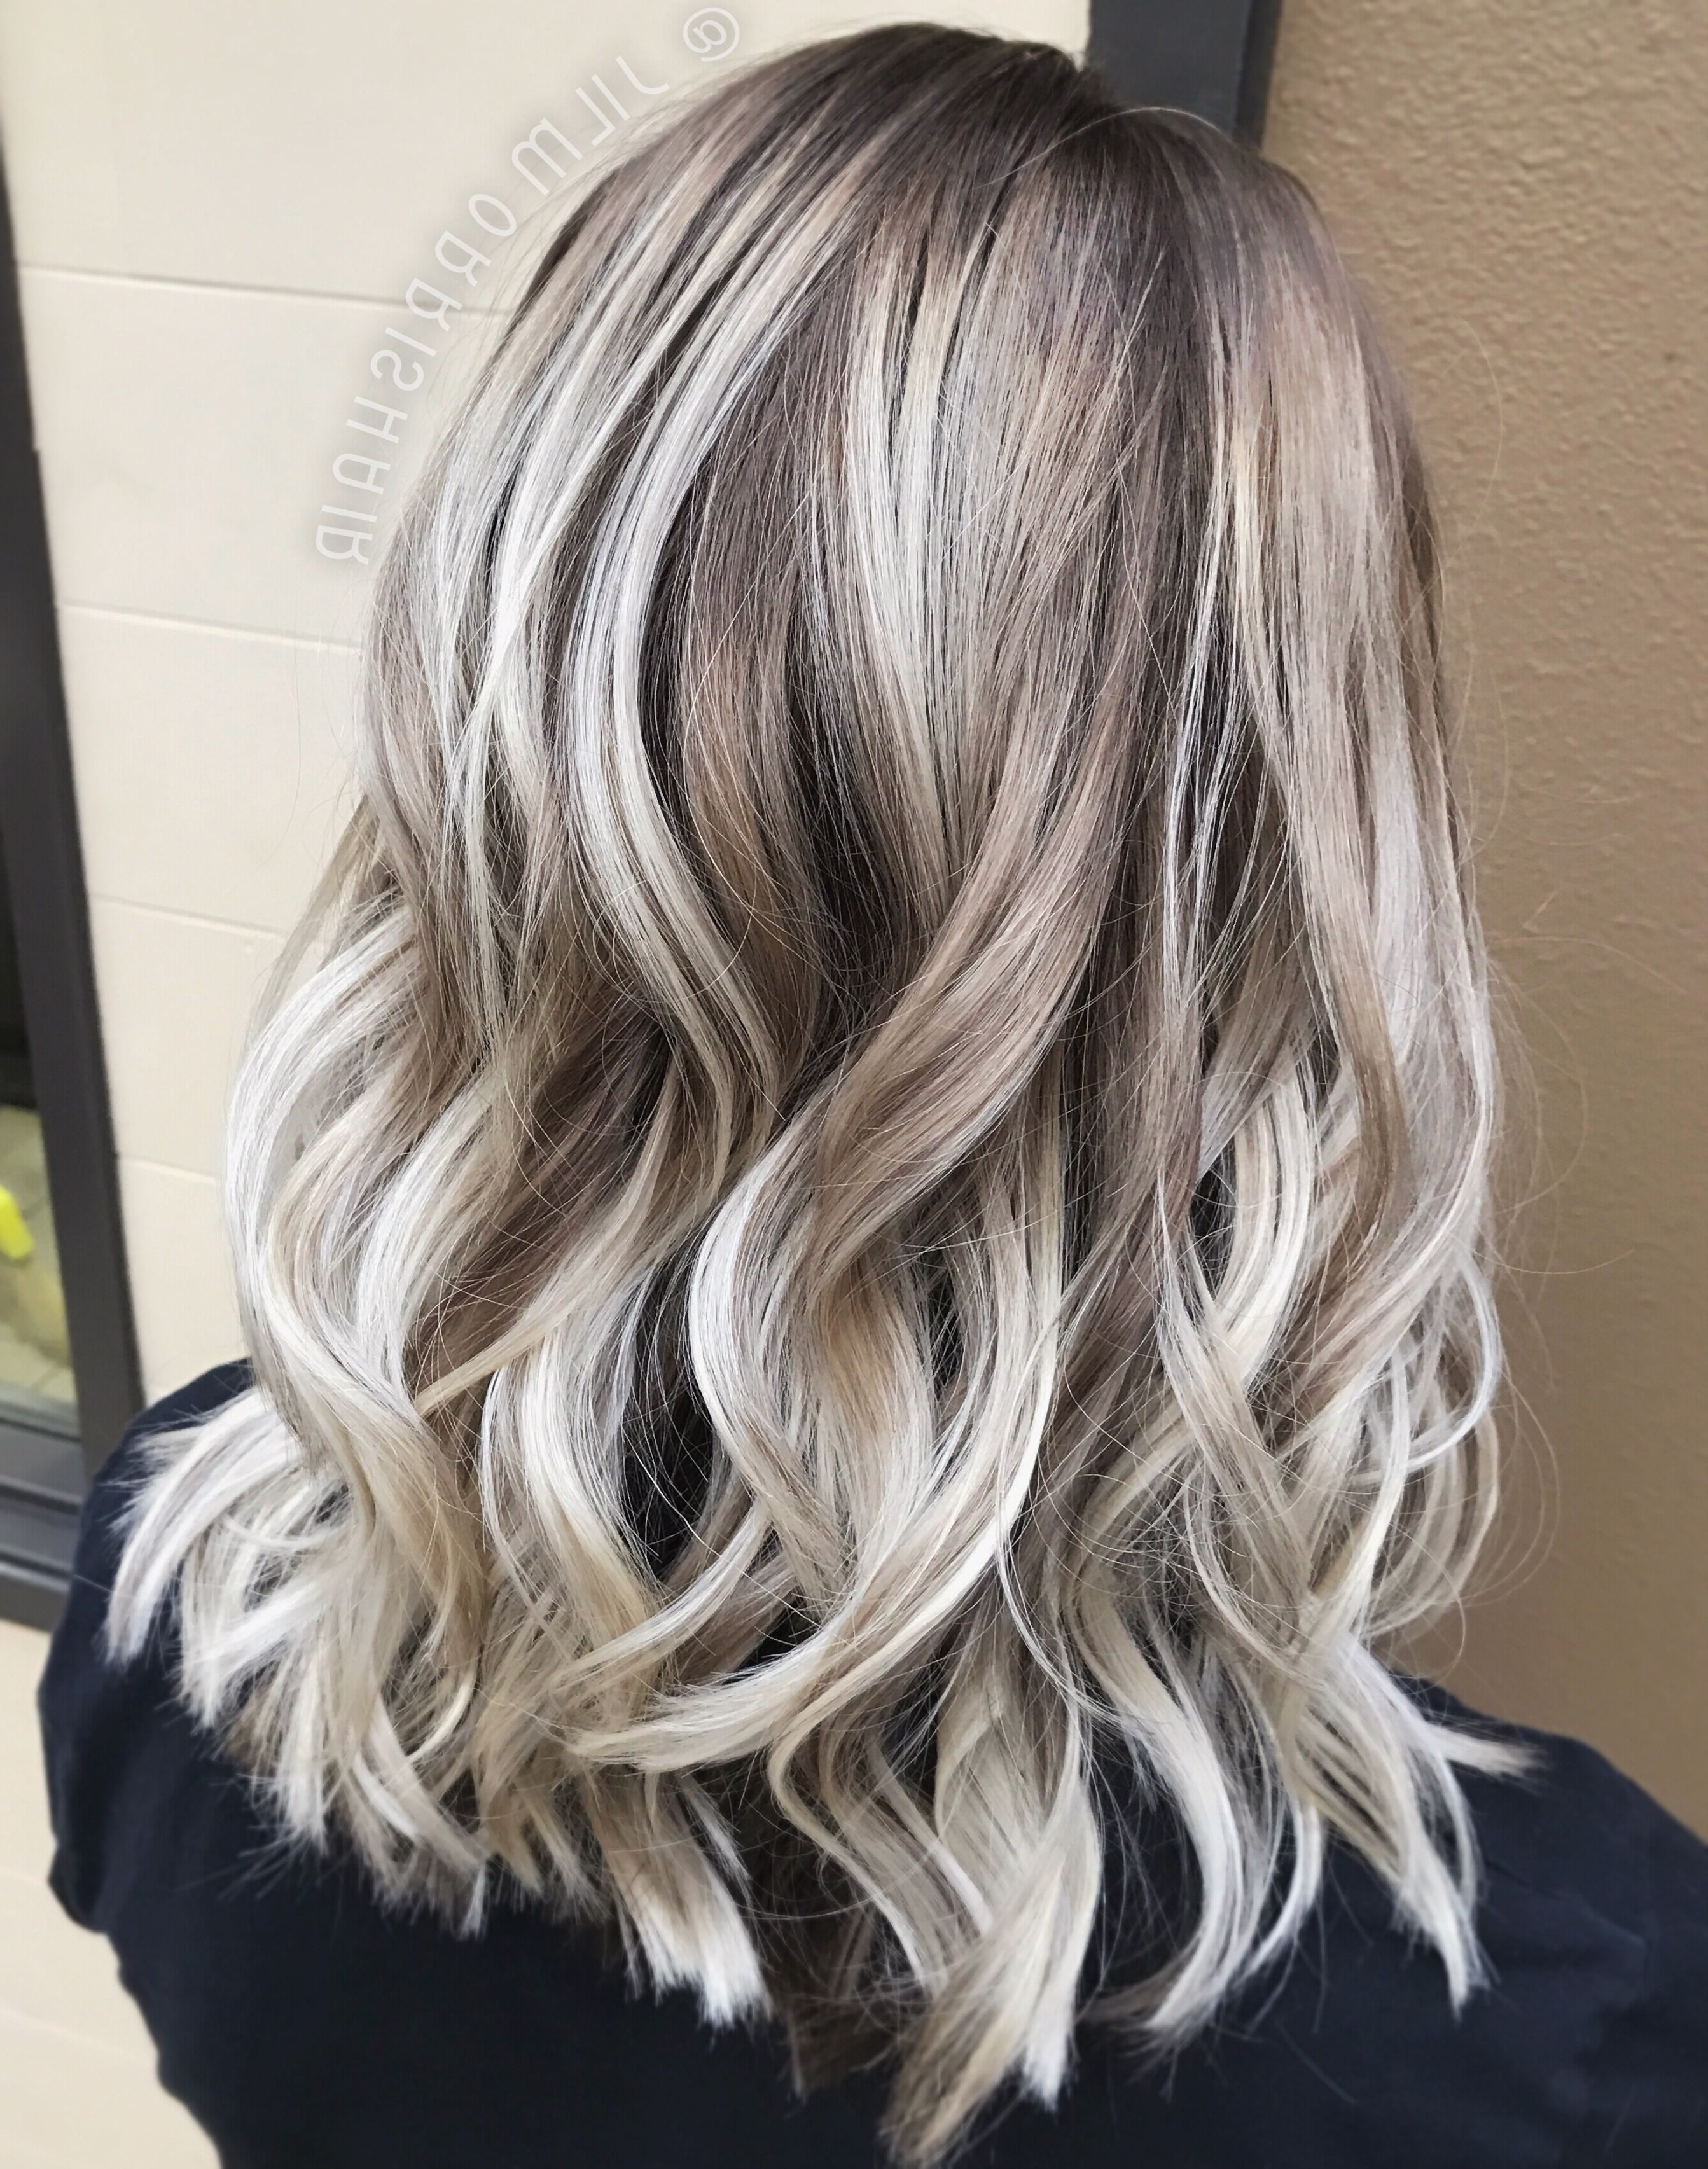 Fashionable Dark Blonde Into White Hairstyles For White Ash Blonde Balayage, Shadow Root, Curls In A Textured Lob (View 12 of 20)